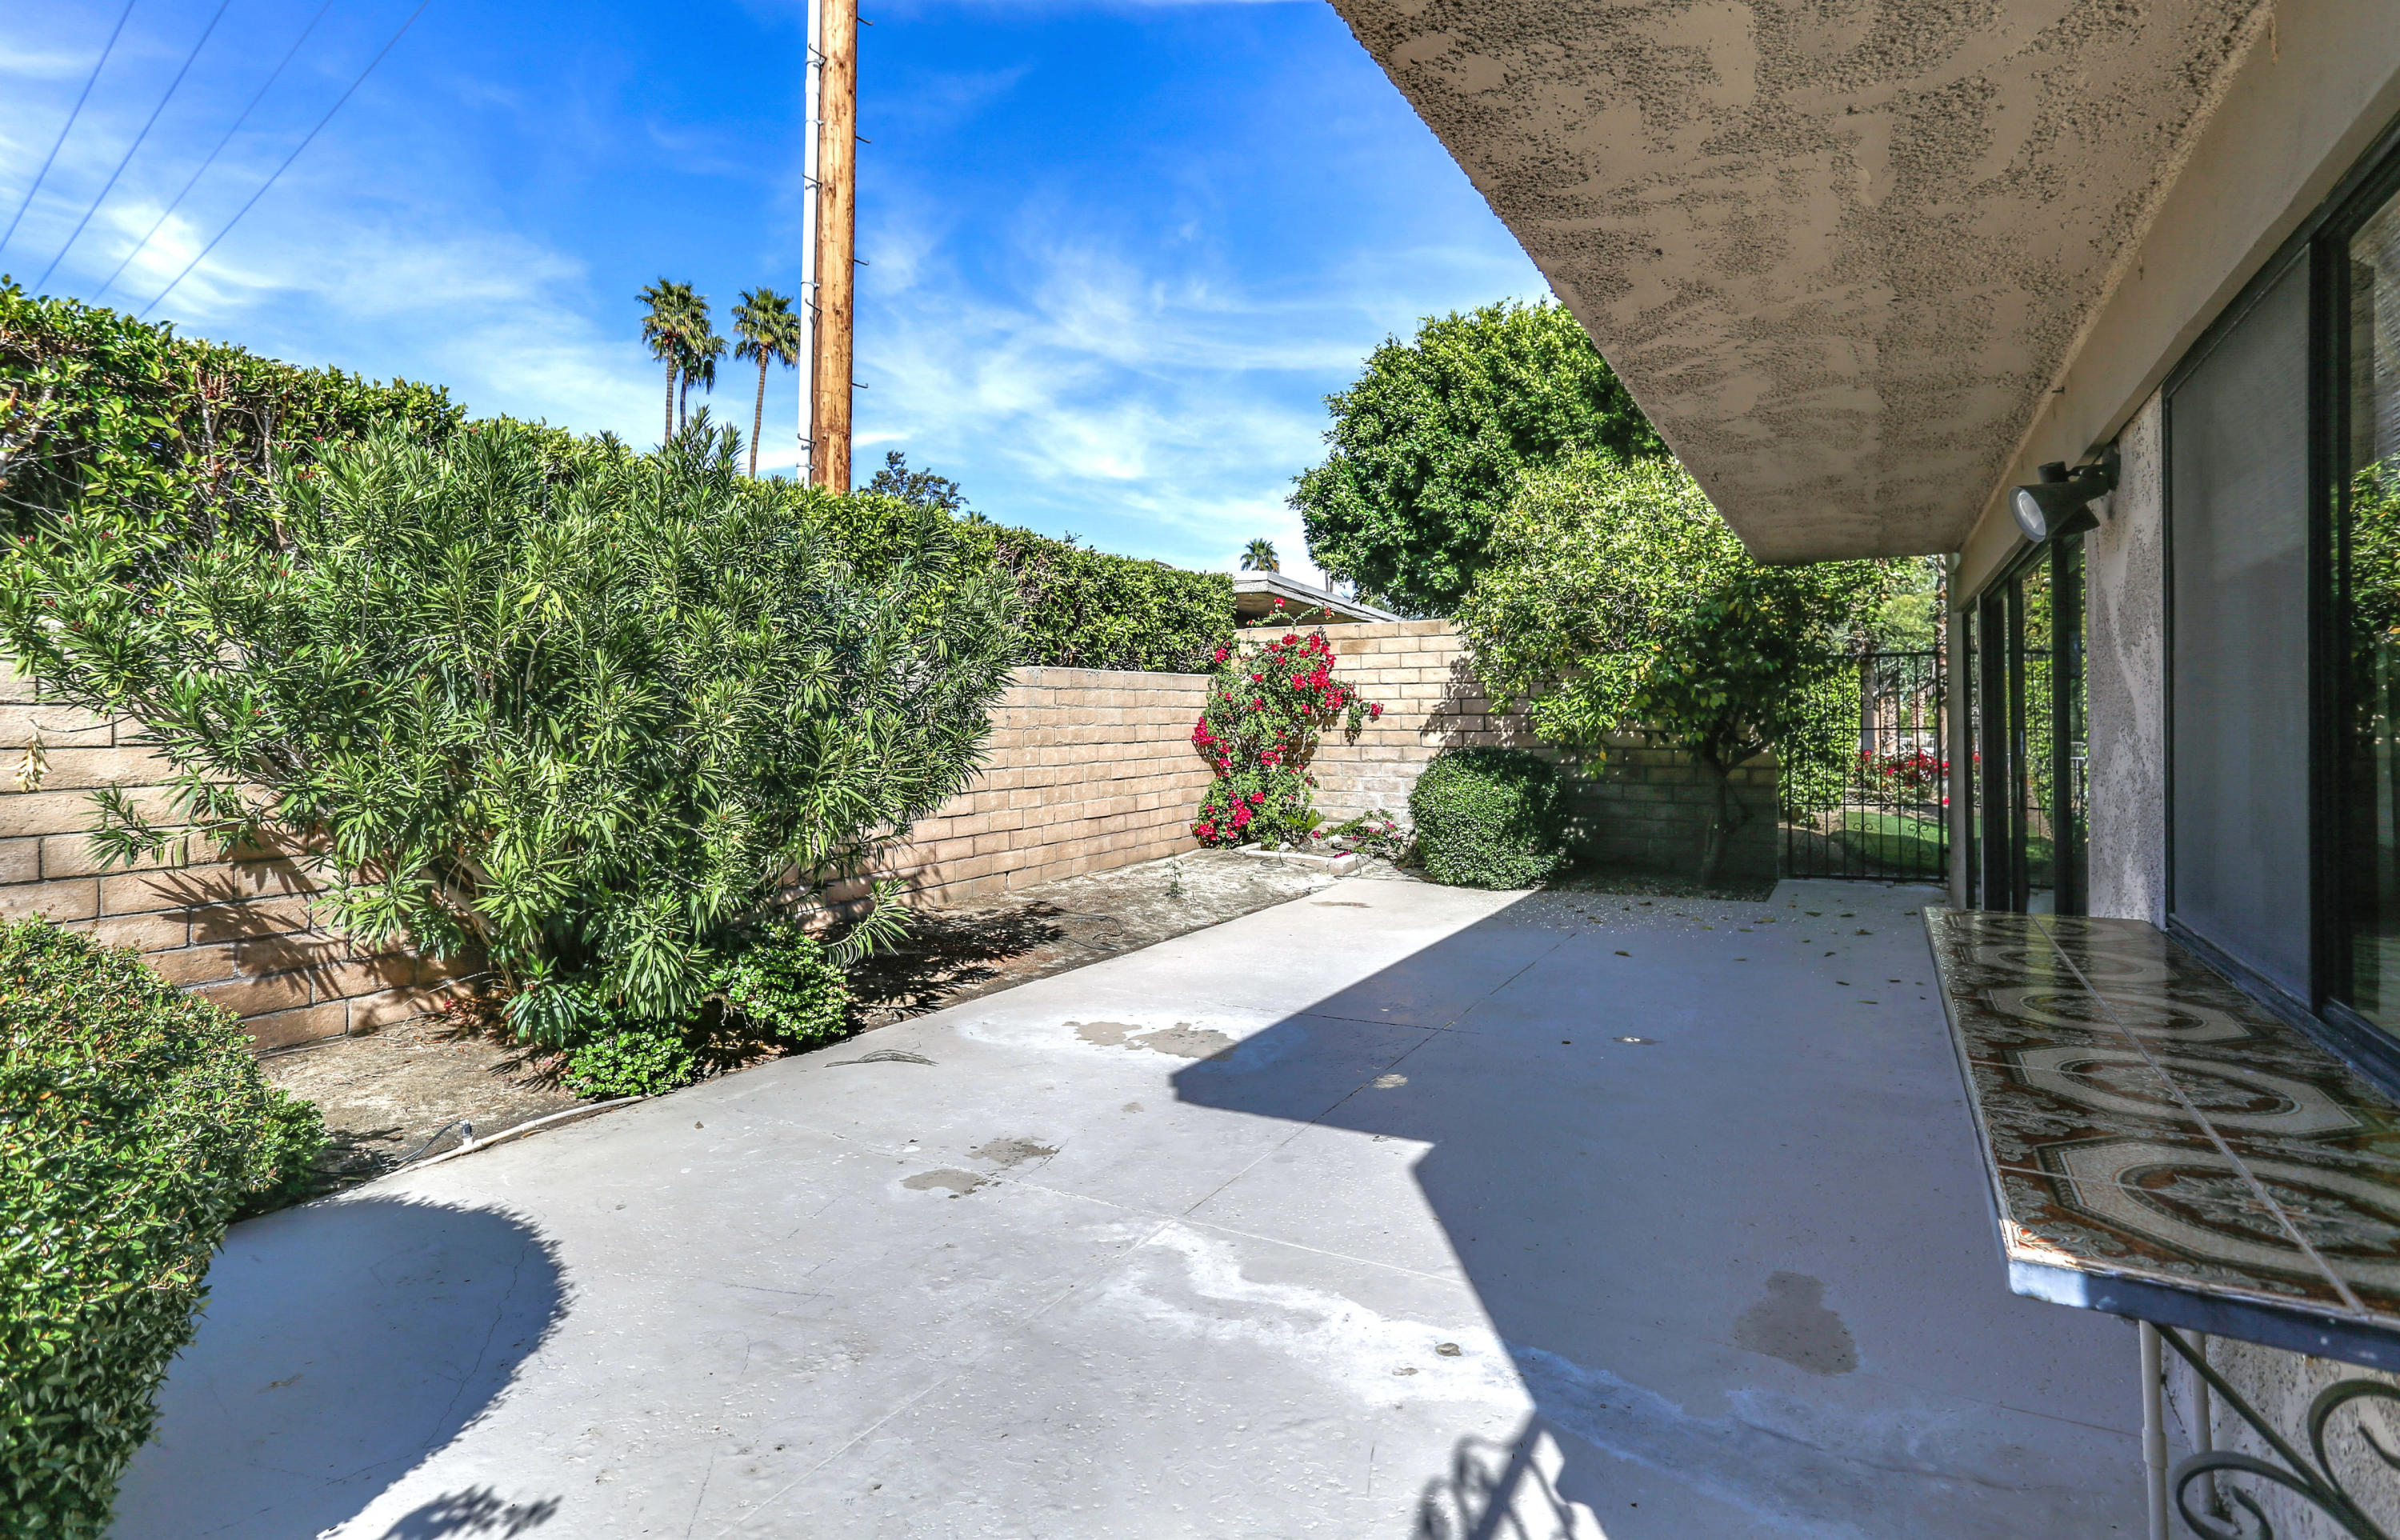 1749 E Sandalwood Drive, Palm Springs, California 92262, 2 Bedrooms Bedrooms, ,2 BathroomsBathrooms,Residential,For Sale,1749 E Sandalwood Drive,219040663